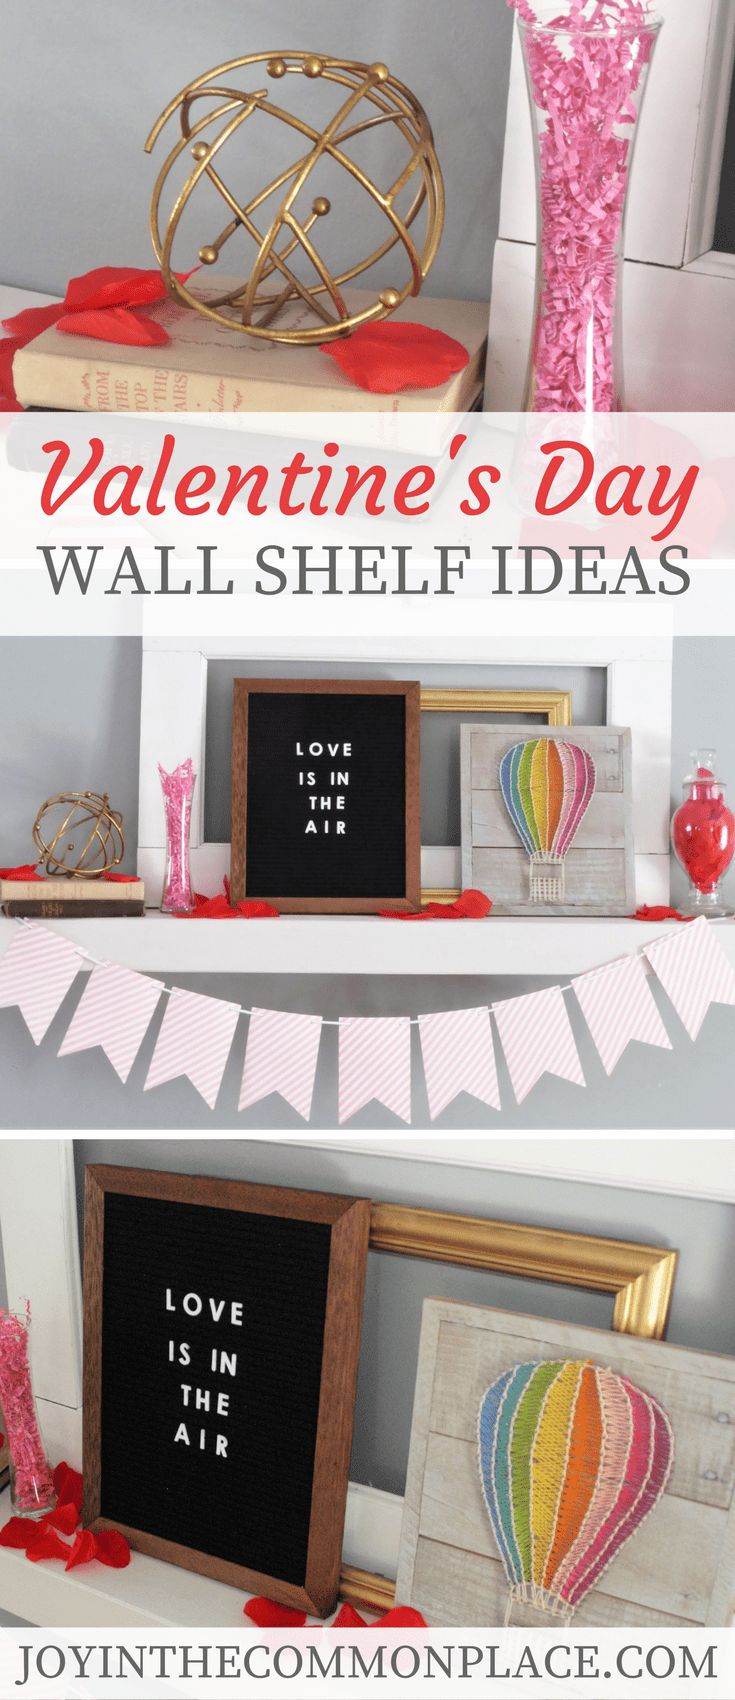 Valentine's Day Wall Shelf Ideas